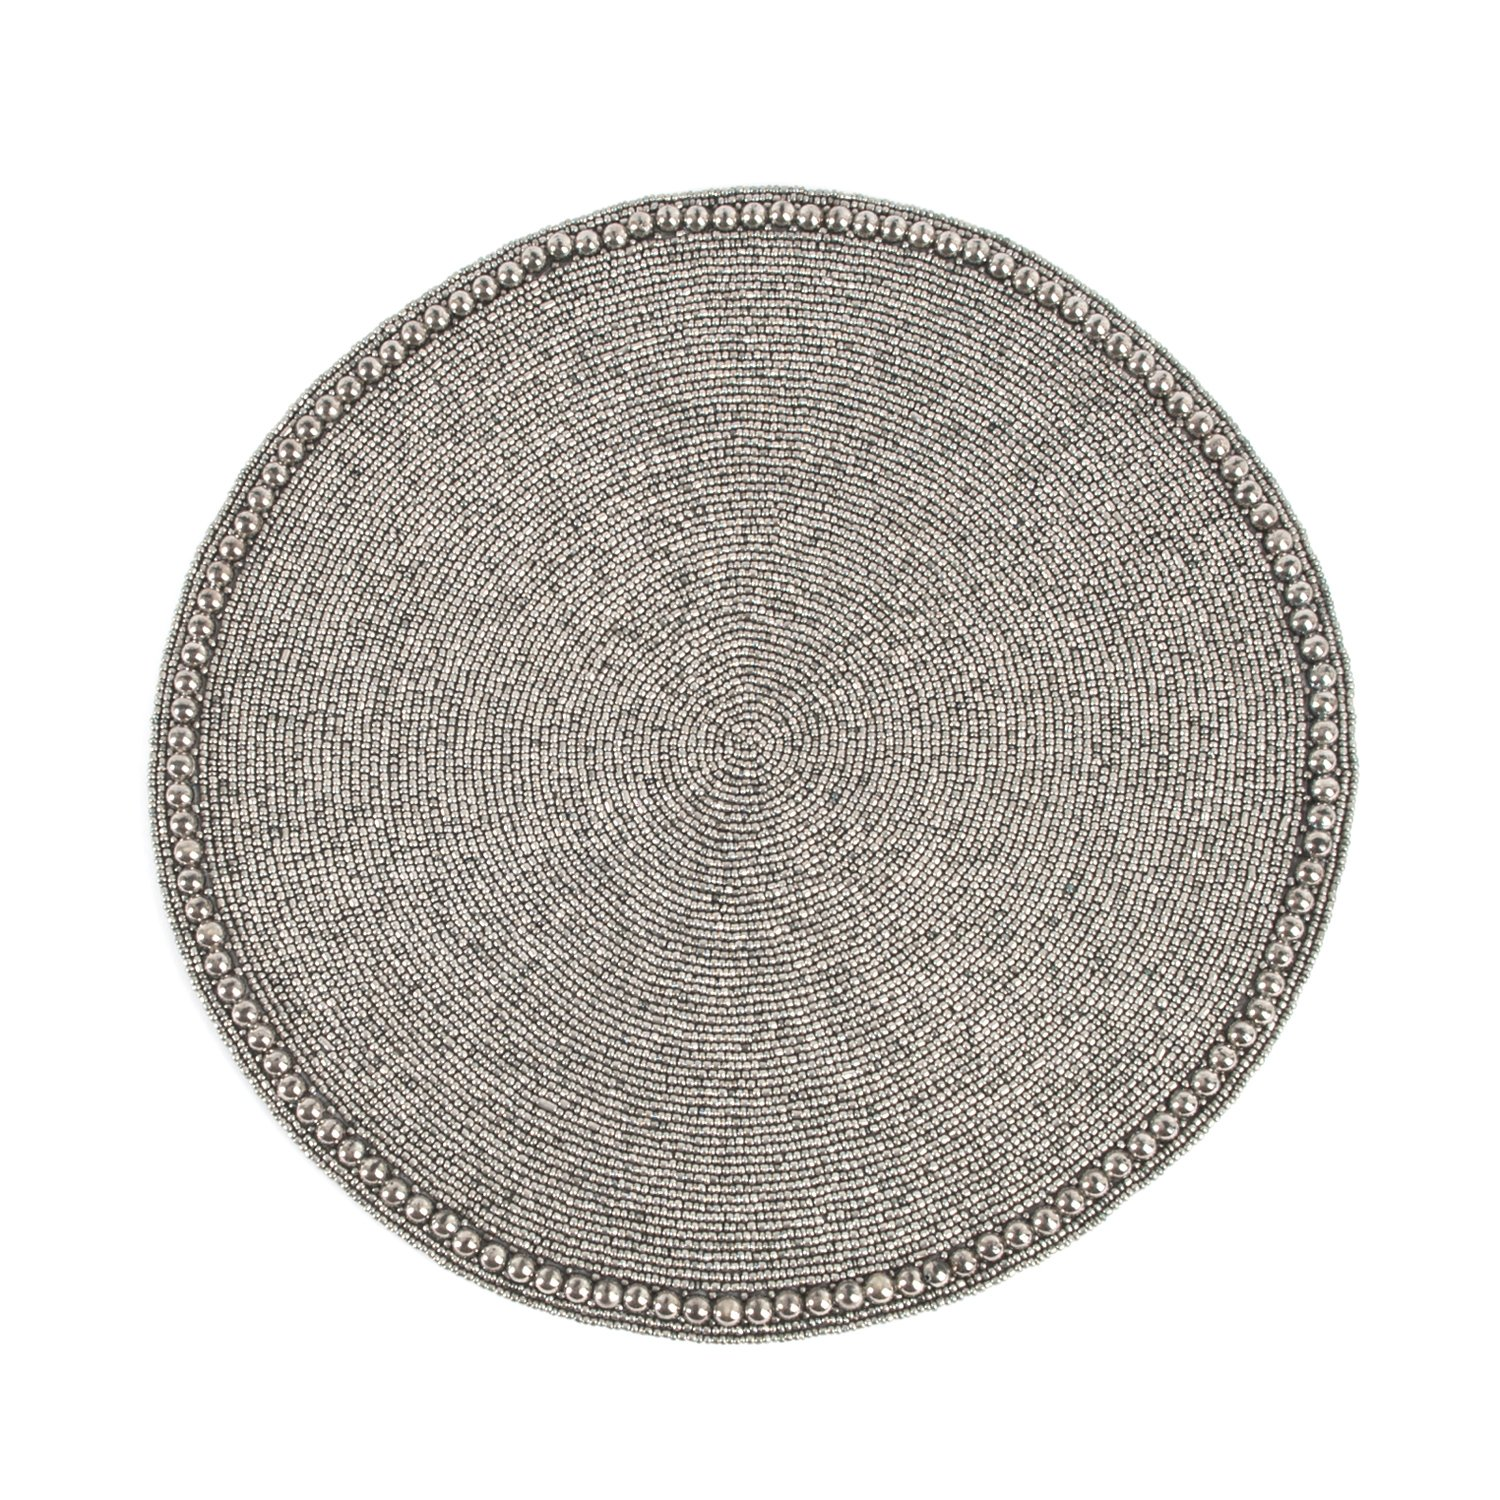 Pewter Color Glass Beaded Placemat 15'' Round , (4 Piece Set)